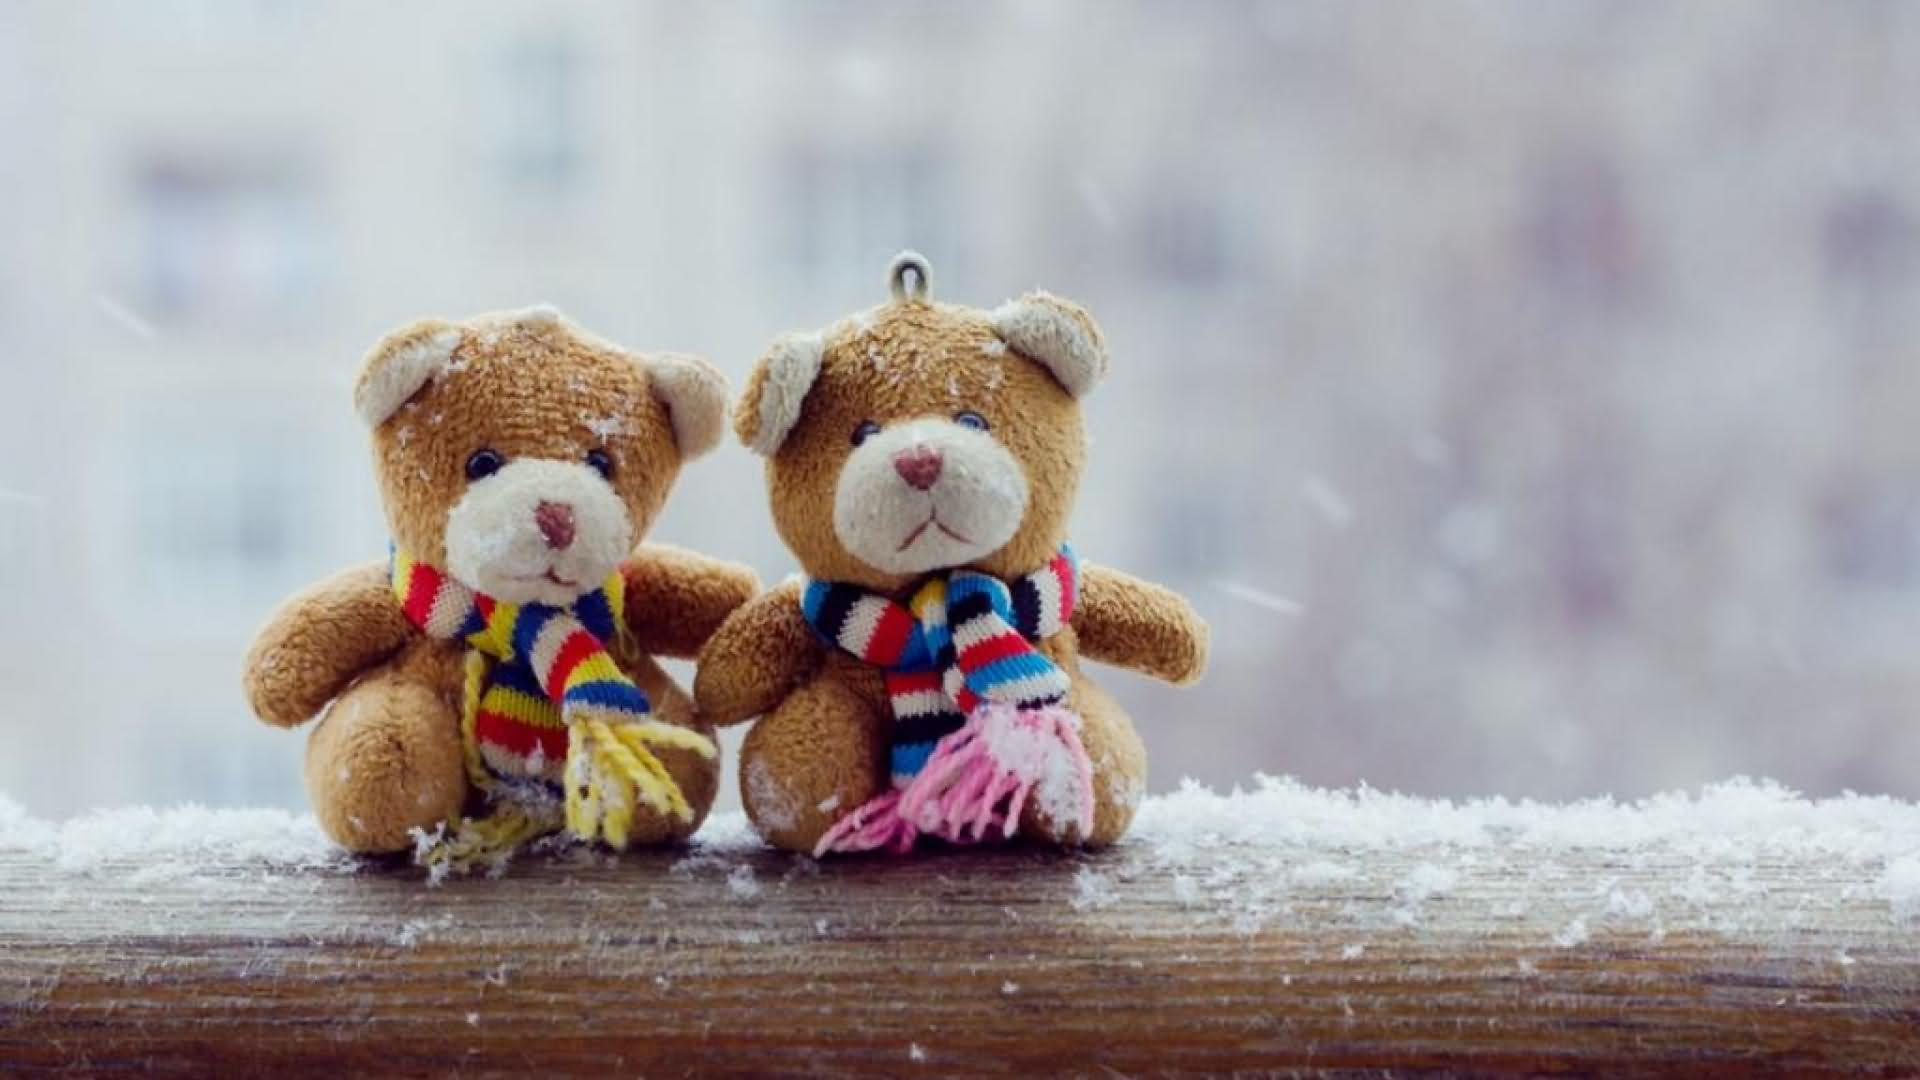 cute teddy bear images wallpapers 37 wallpapers